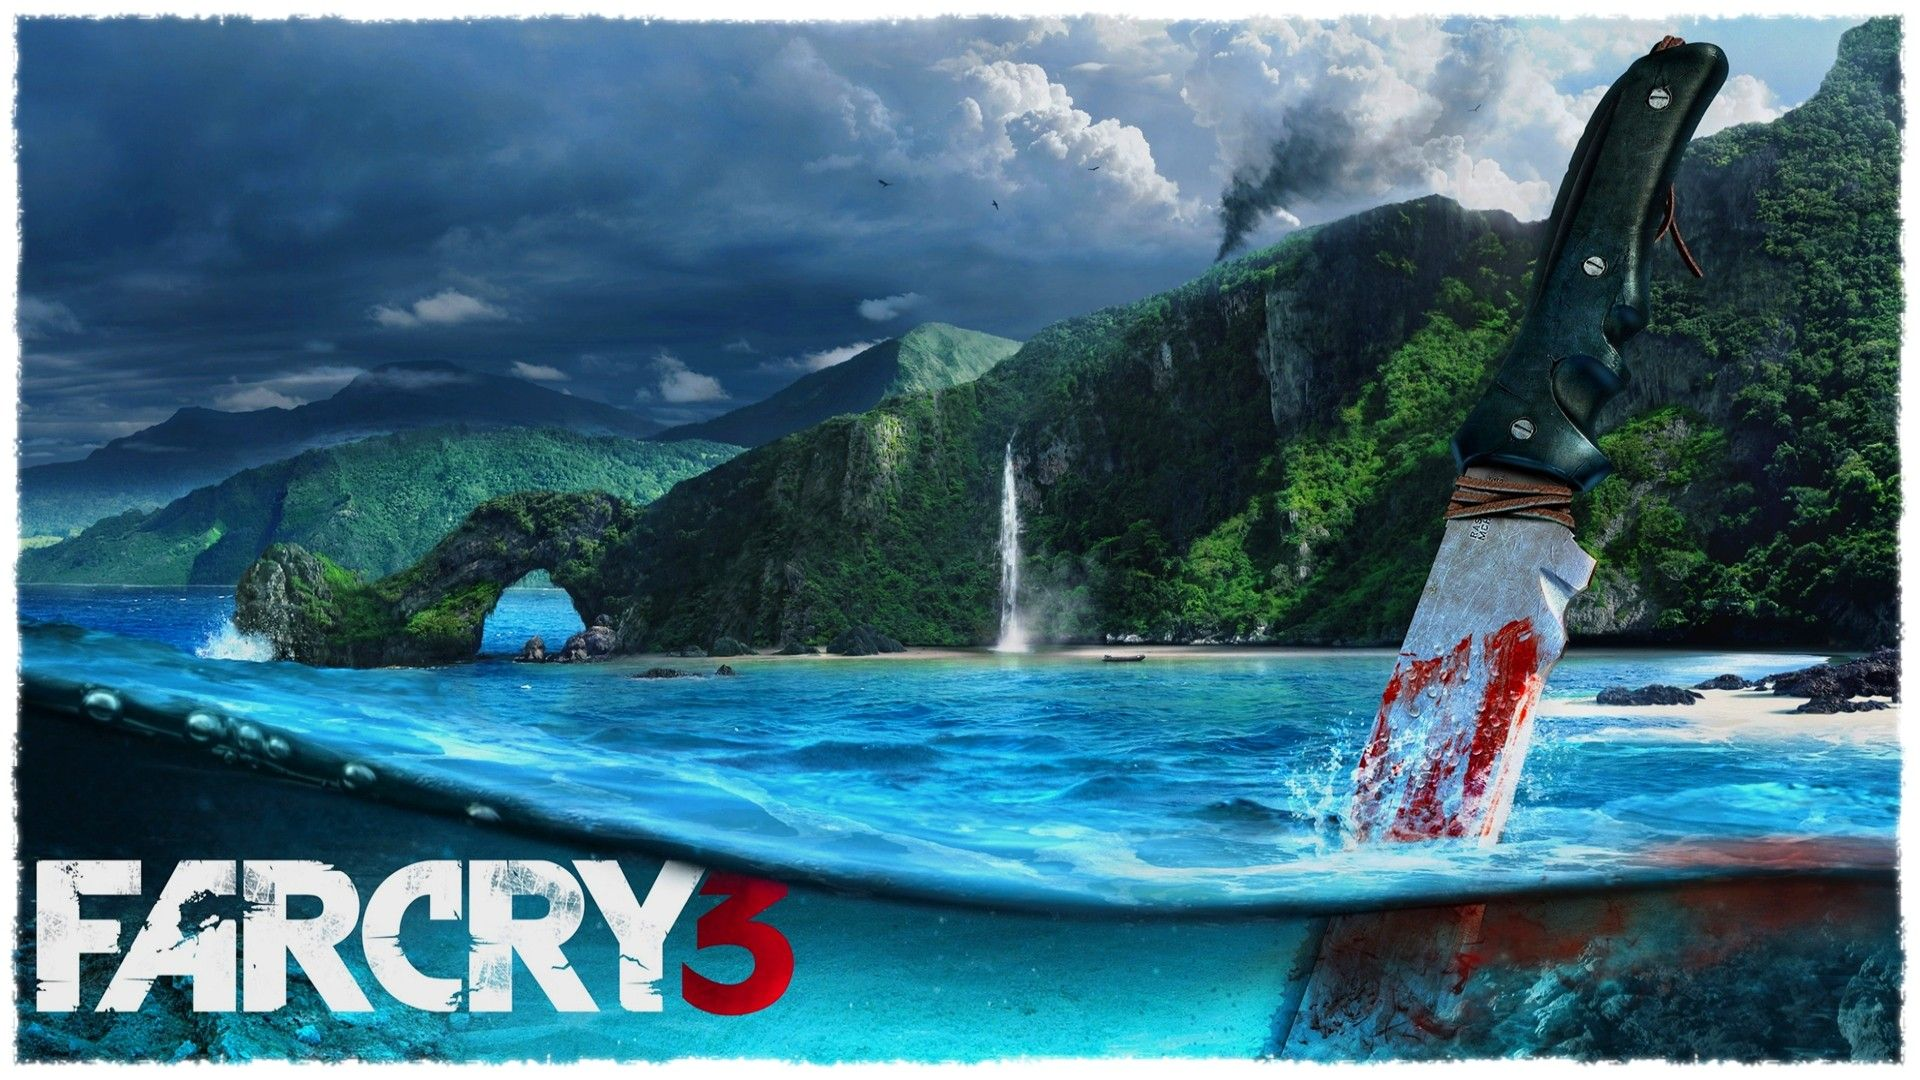 Http Www Youtube Com User Tvplgamers Subscribe Like Comment Far Cry 3 Widescreen Wallpaper Backgrounds Desktop